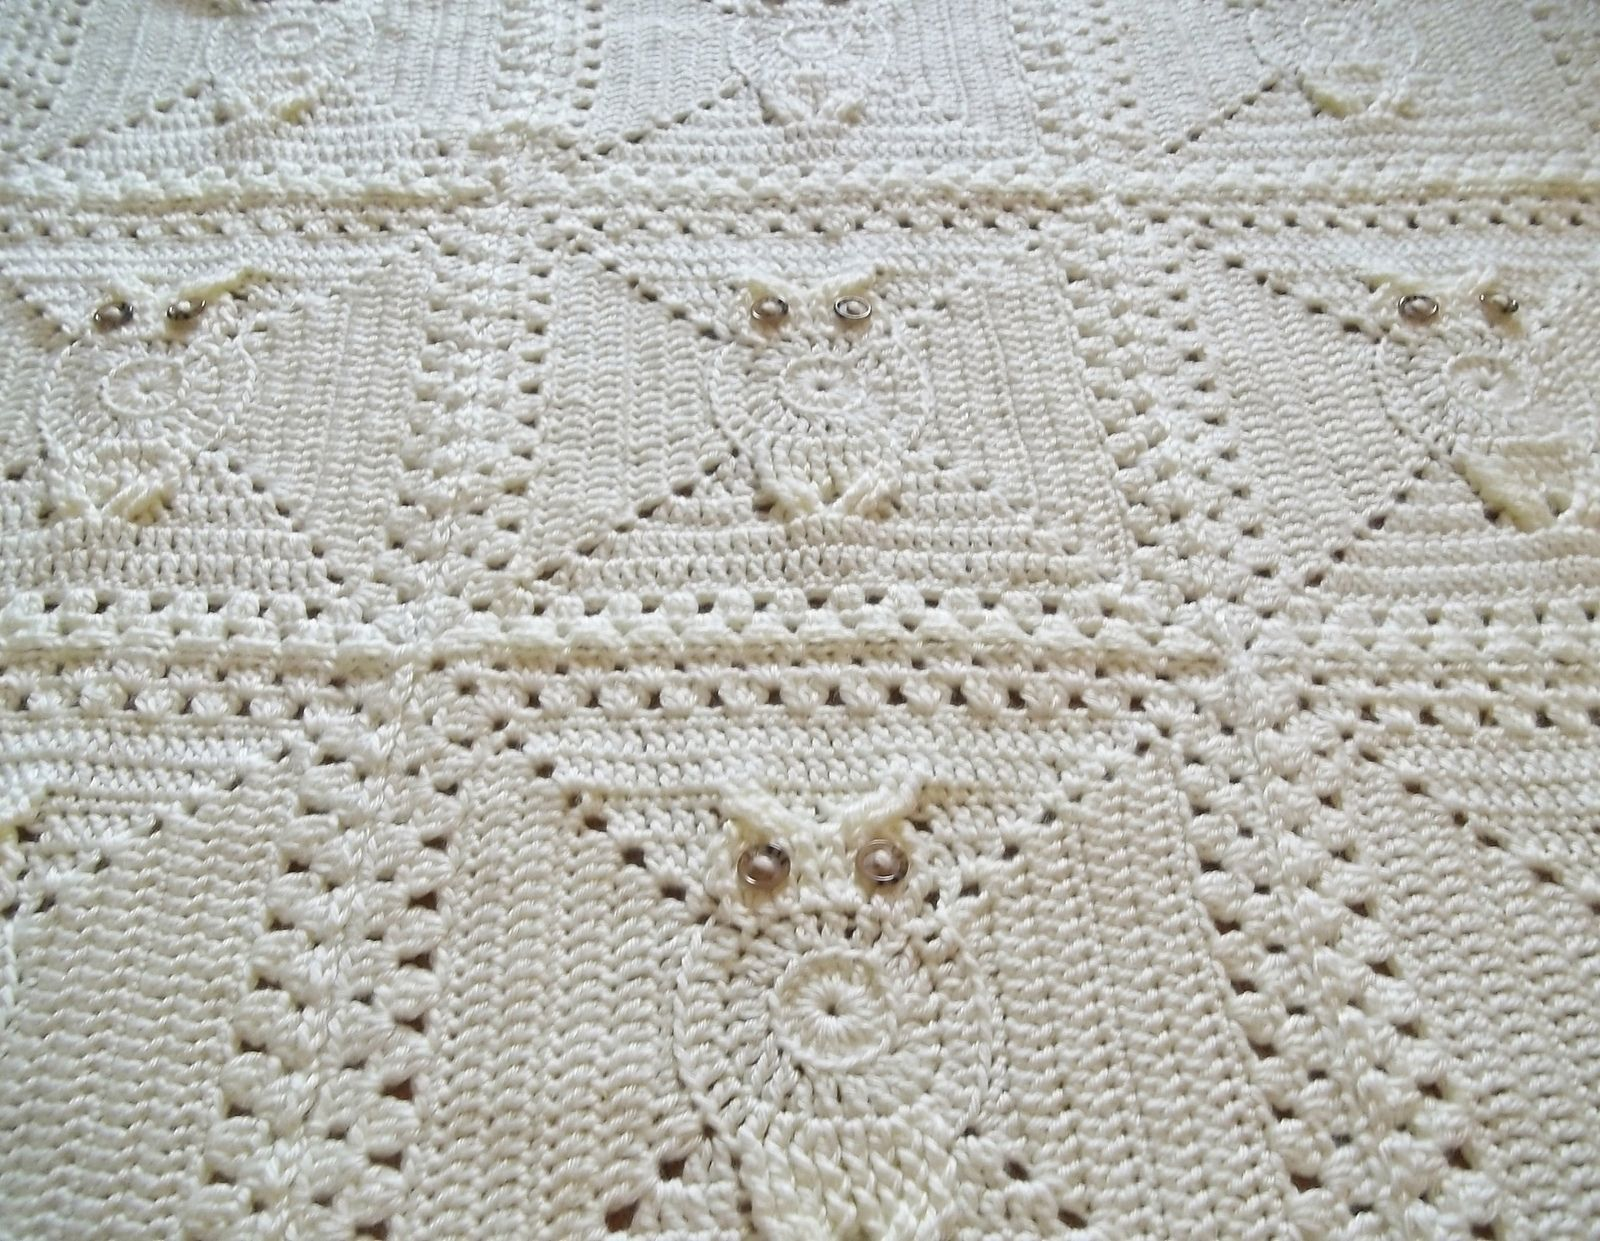 Ravelry: Its a Hoot Owl Afghan Square by Carlinda Lewis